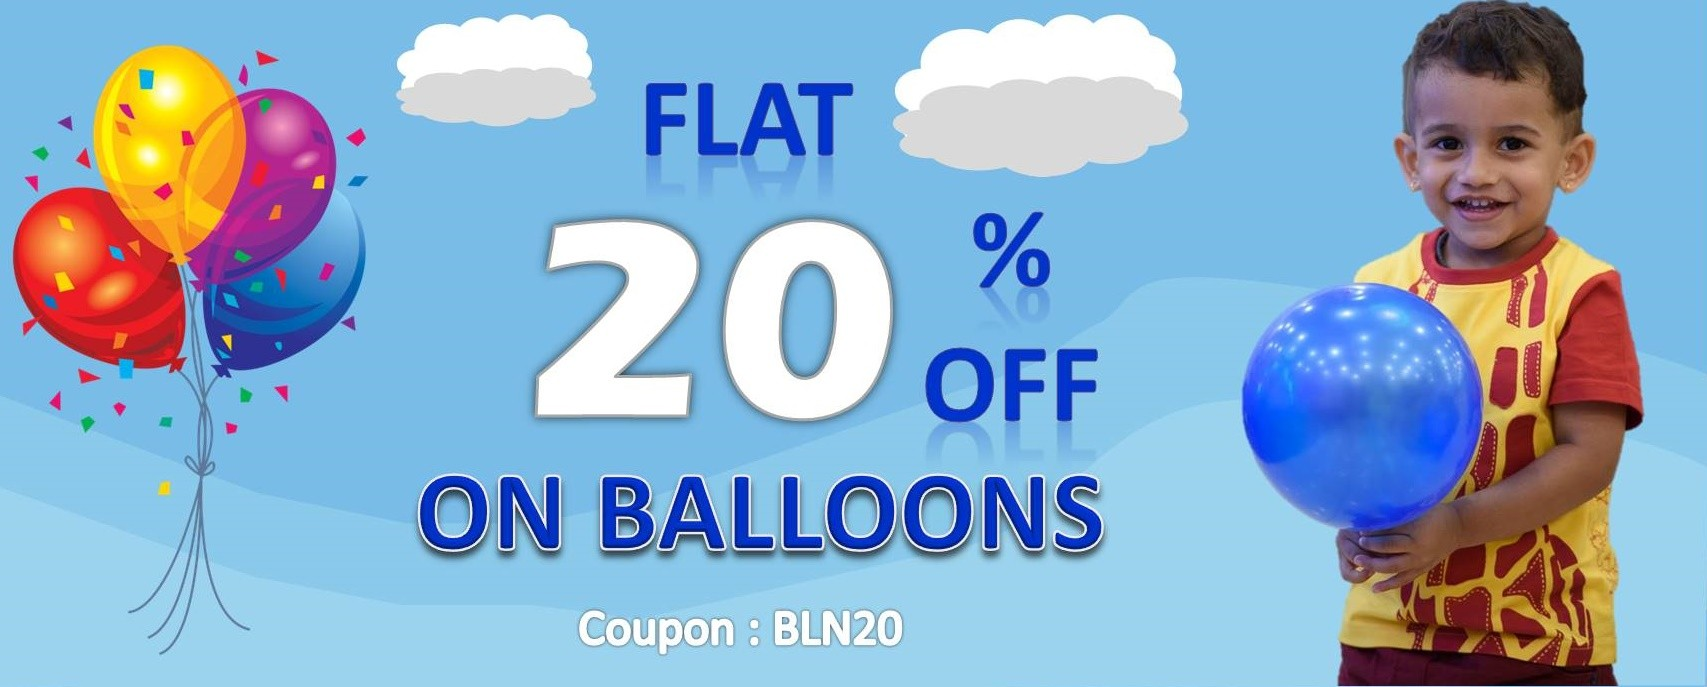 20% Off on Balloons